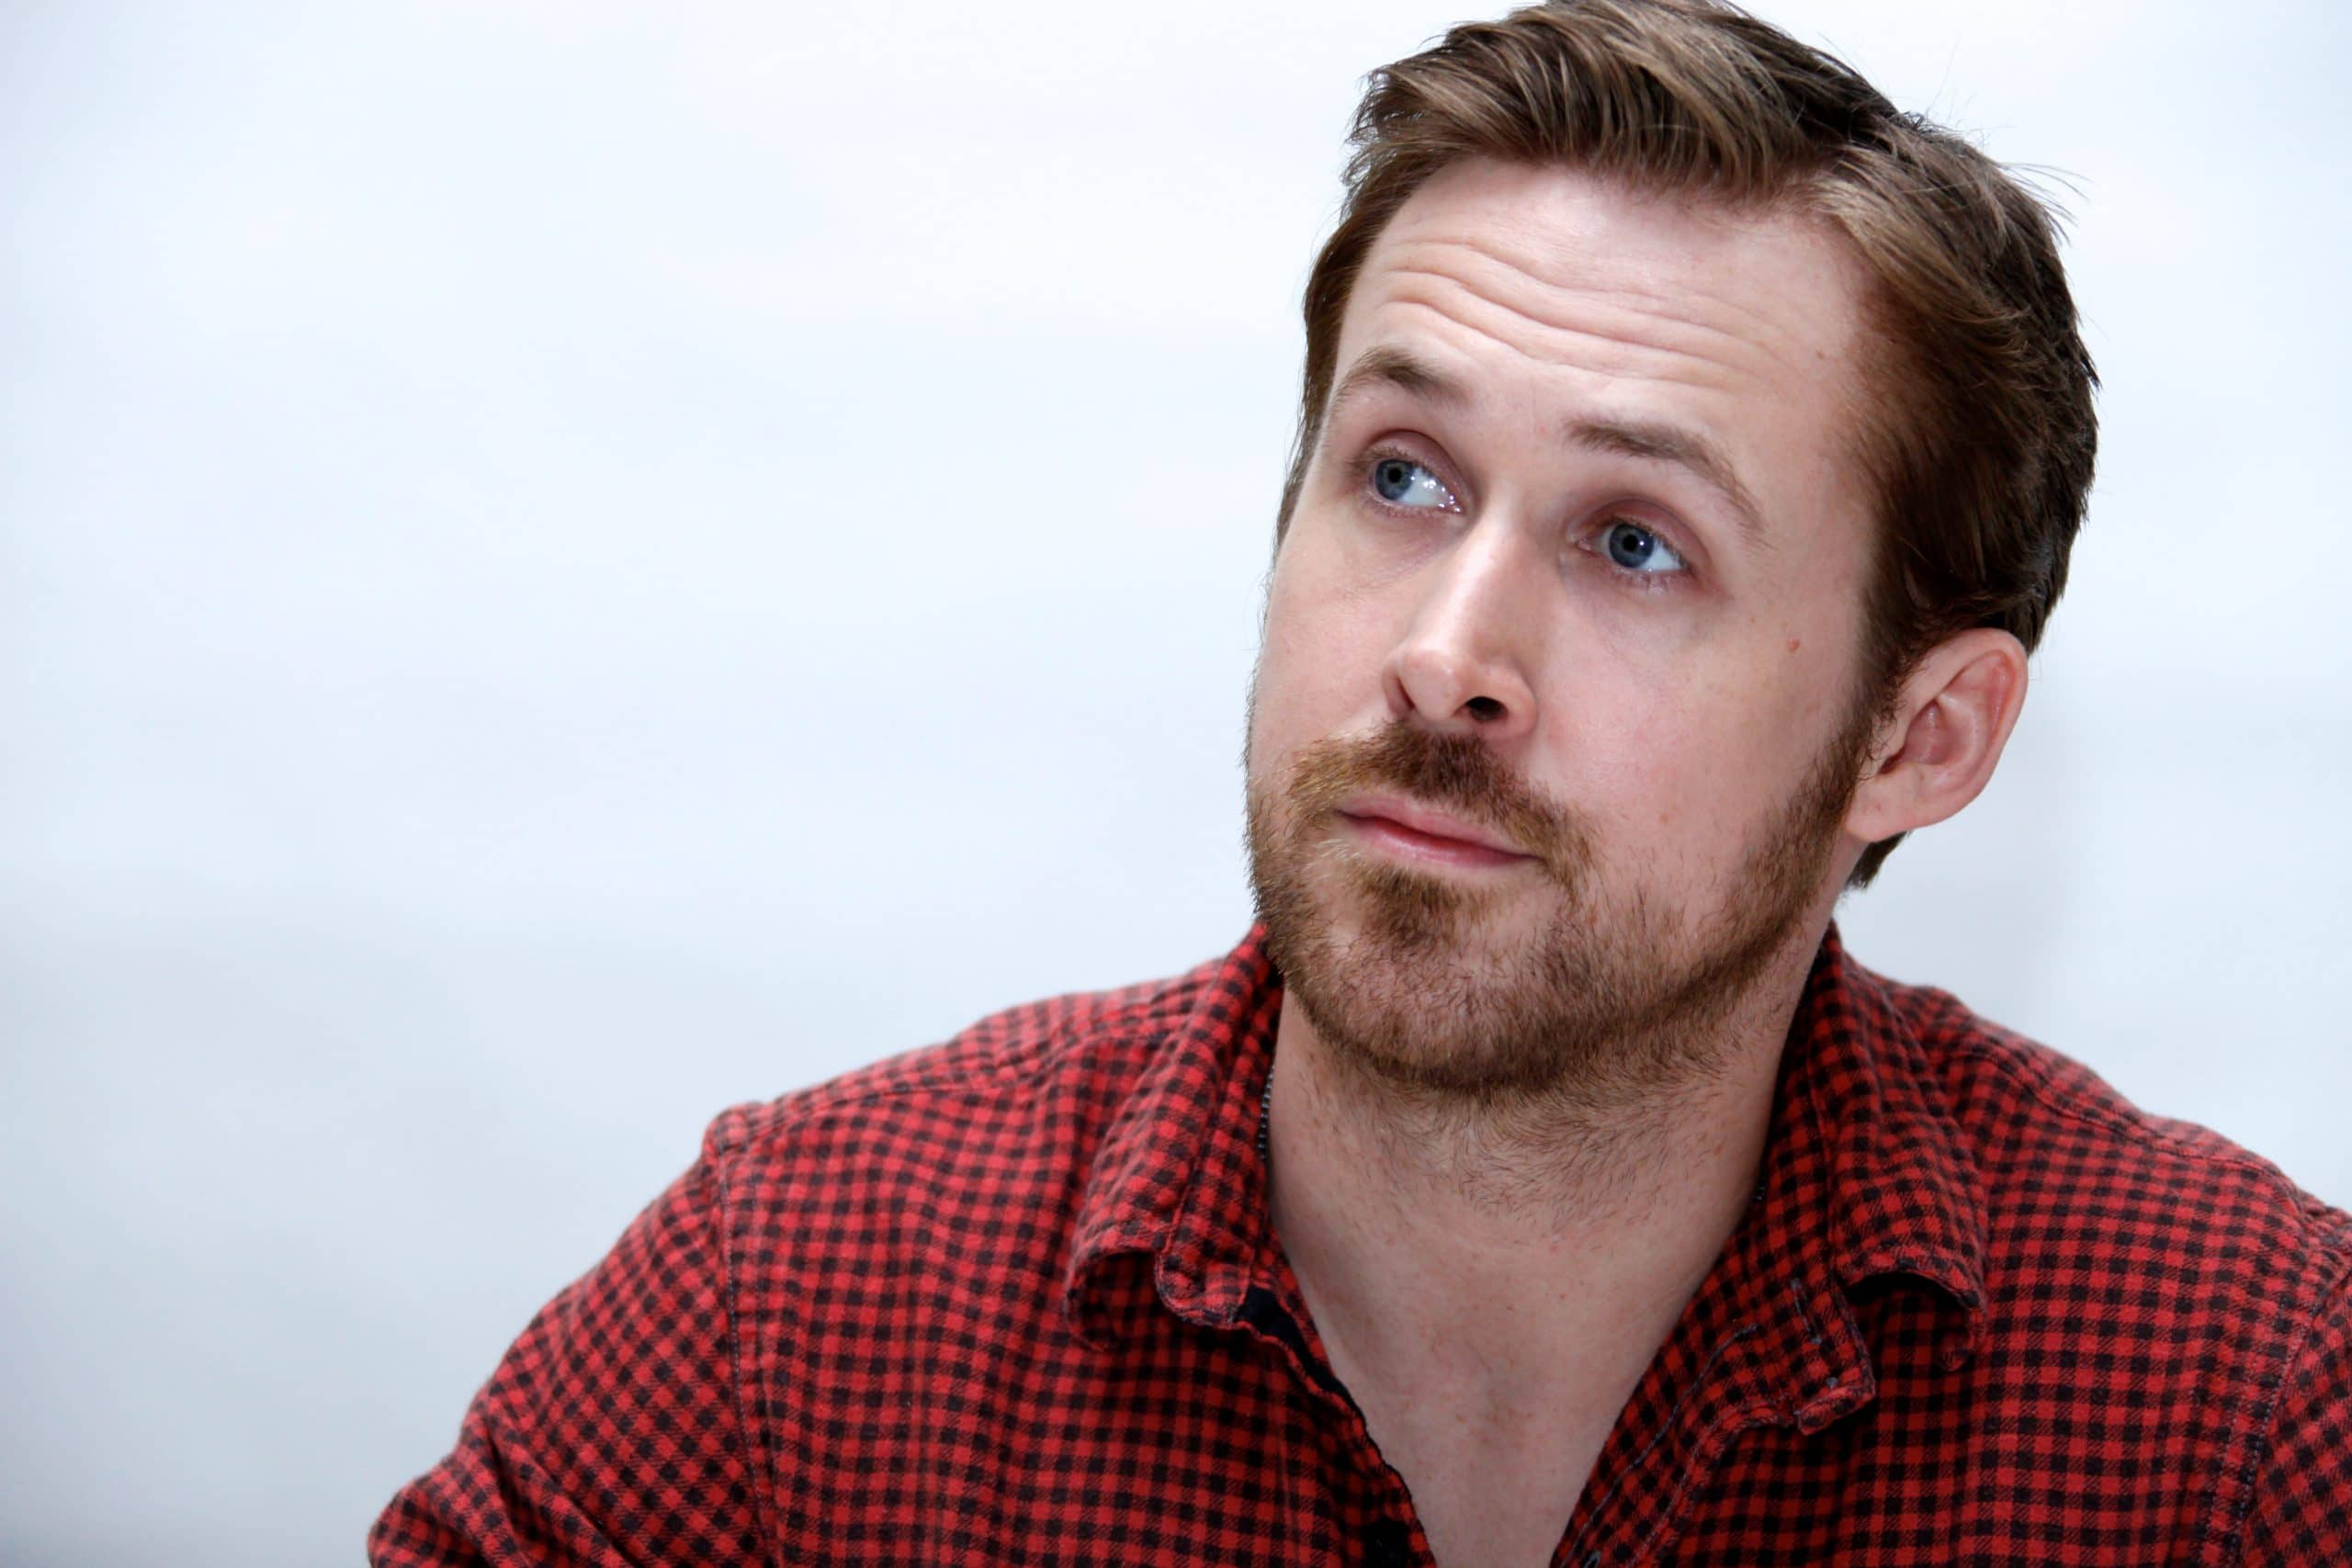 Ryan Gosling Canadian Actor, Director, Writer, Producer and Musician